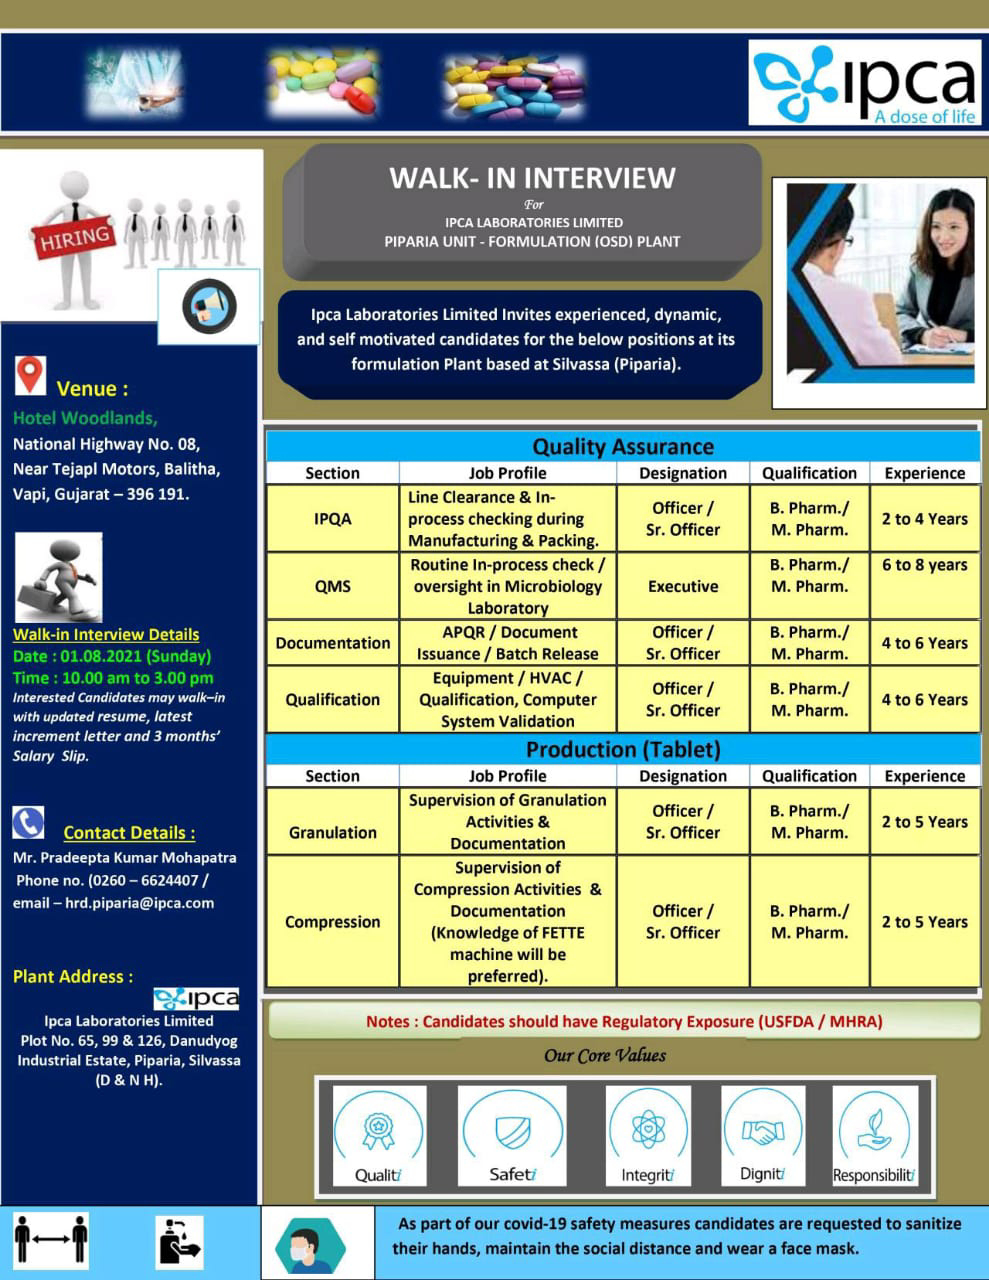 Ipca Laboratories Limited – Walk-In Interviews for Production, Quality Assurance Dept